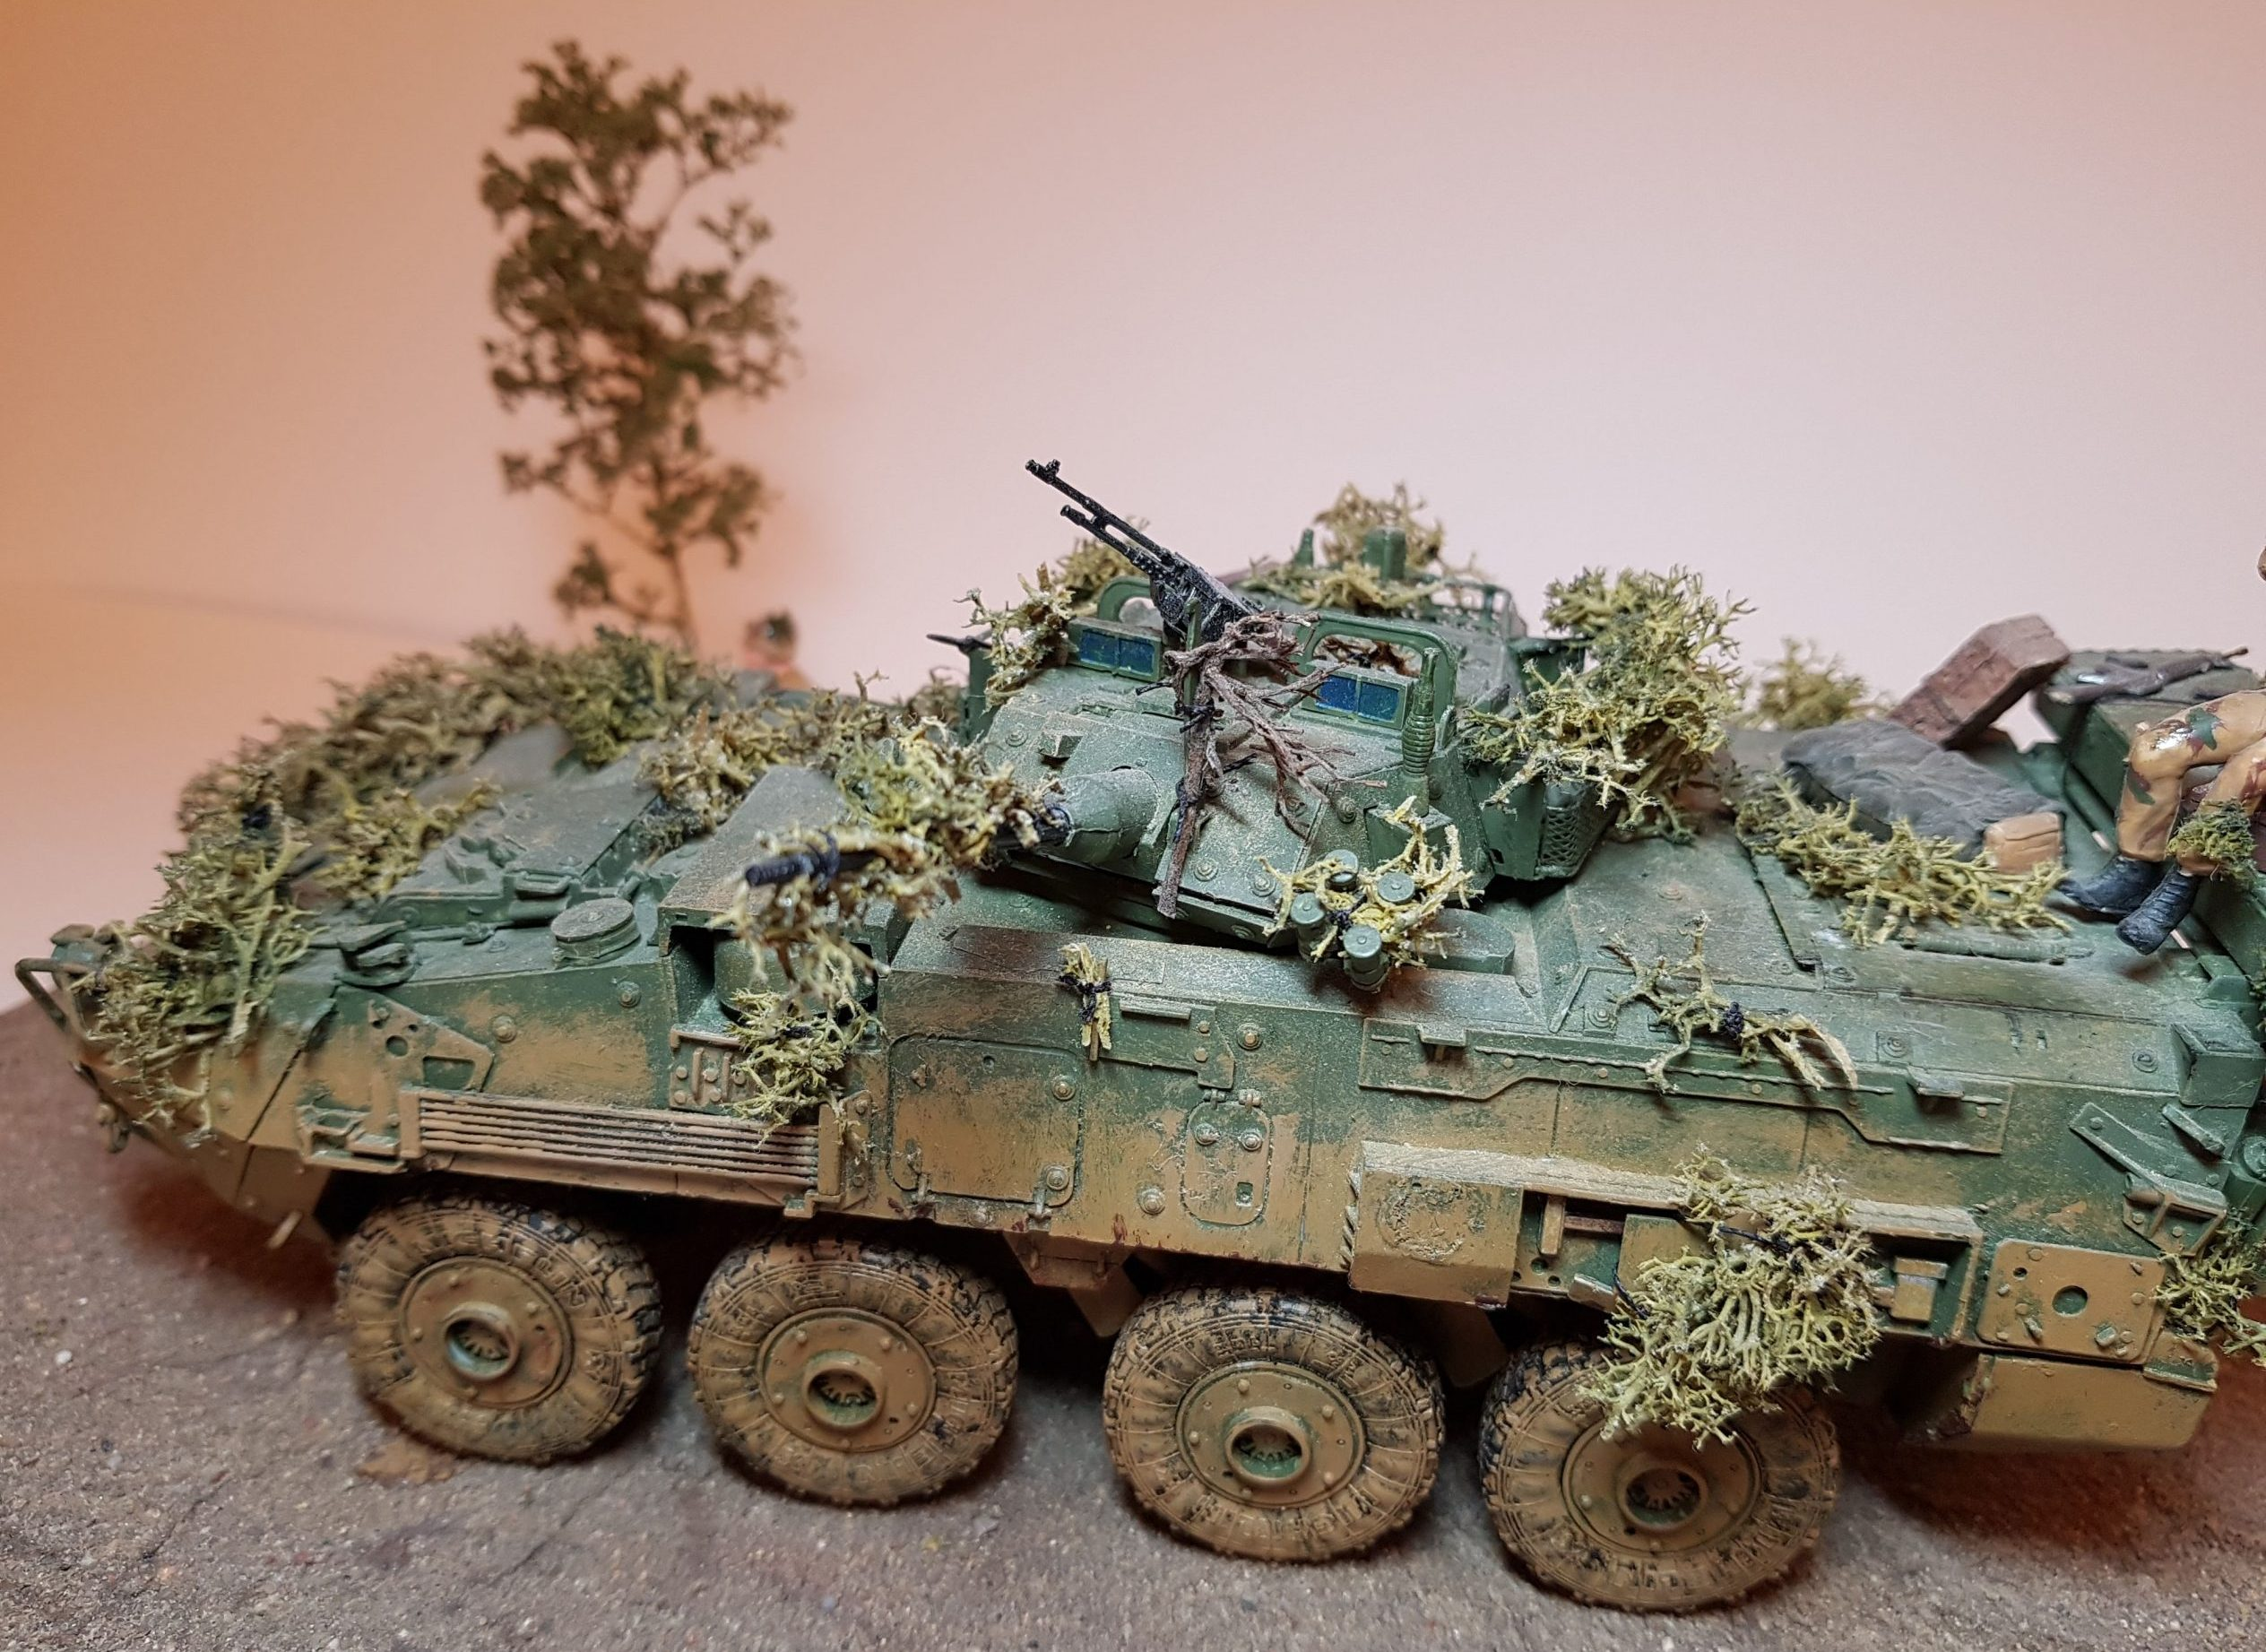 Model of LAV 3/III - Angle View 2 - 1/35 Scale - Built By Wright Built - Trumpeter Models